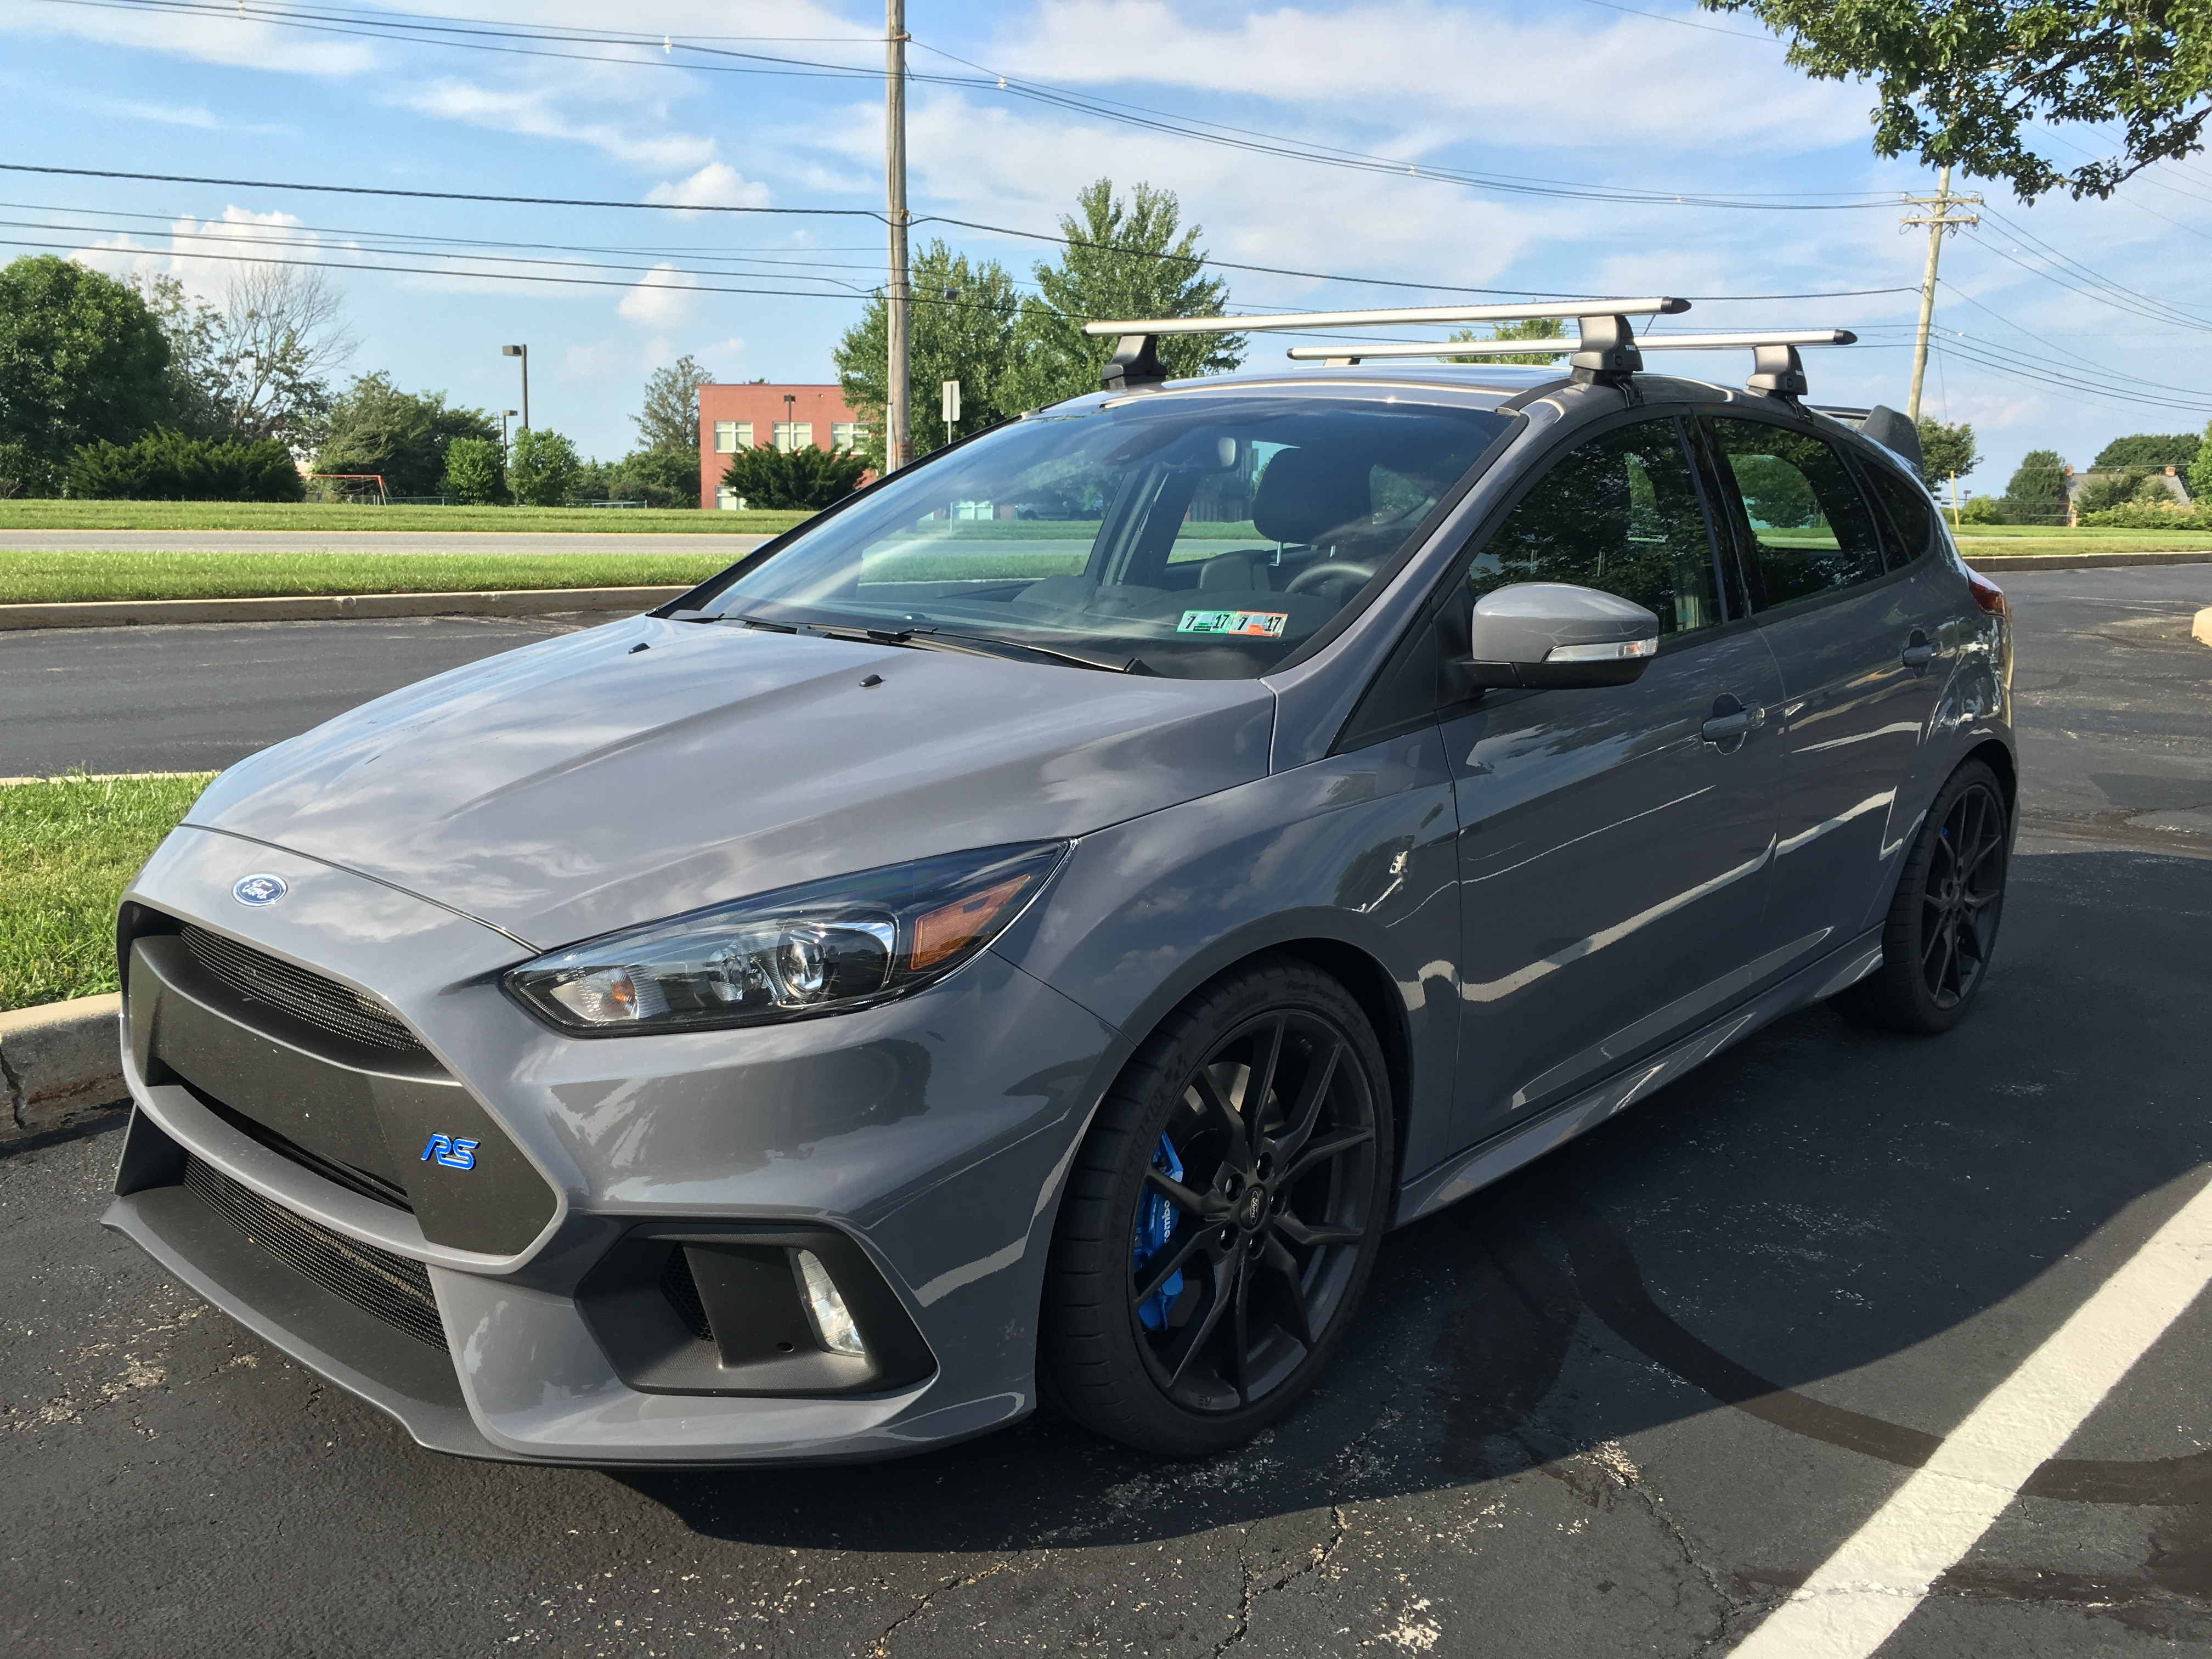 Focus St With Roof Rack >> Roof Rack - Page 7